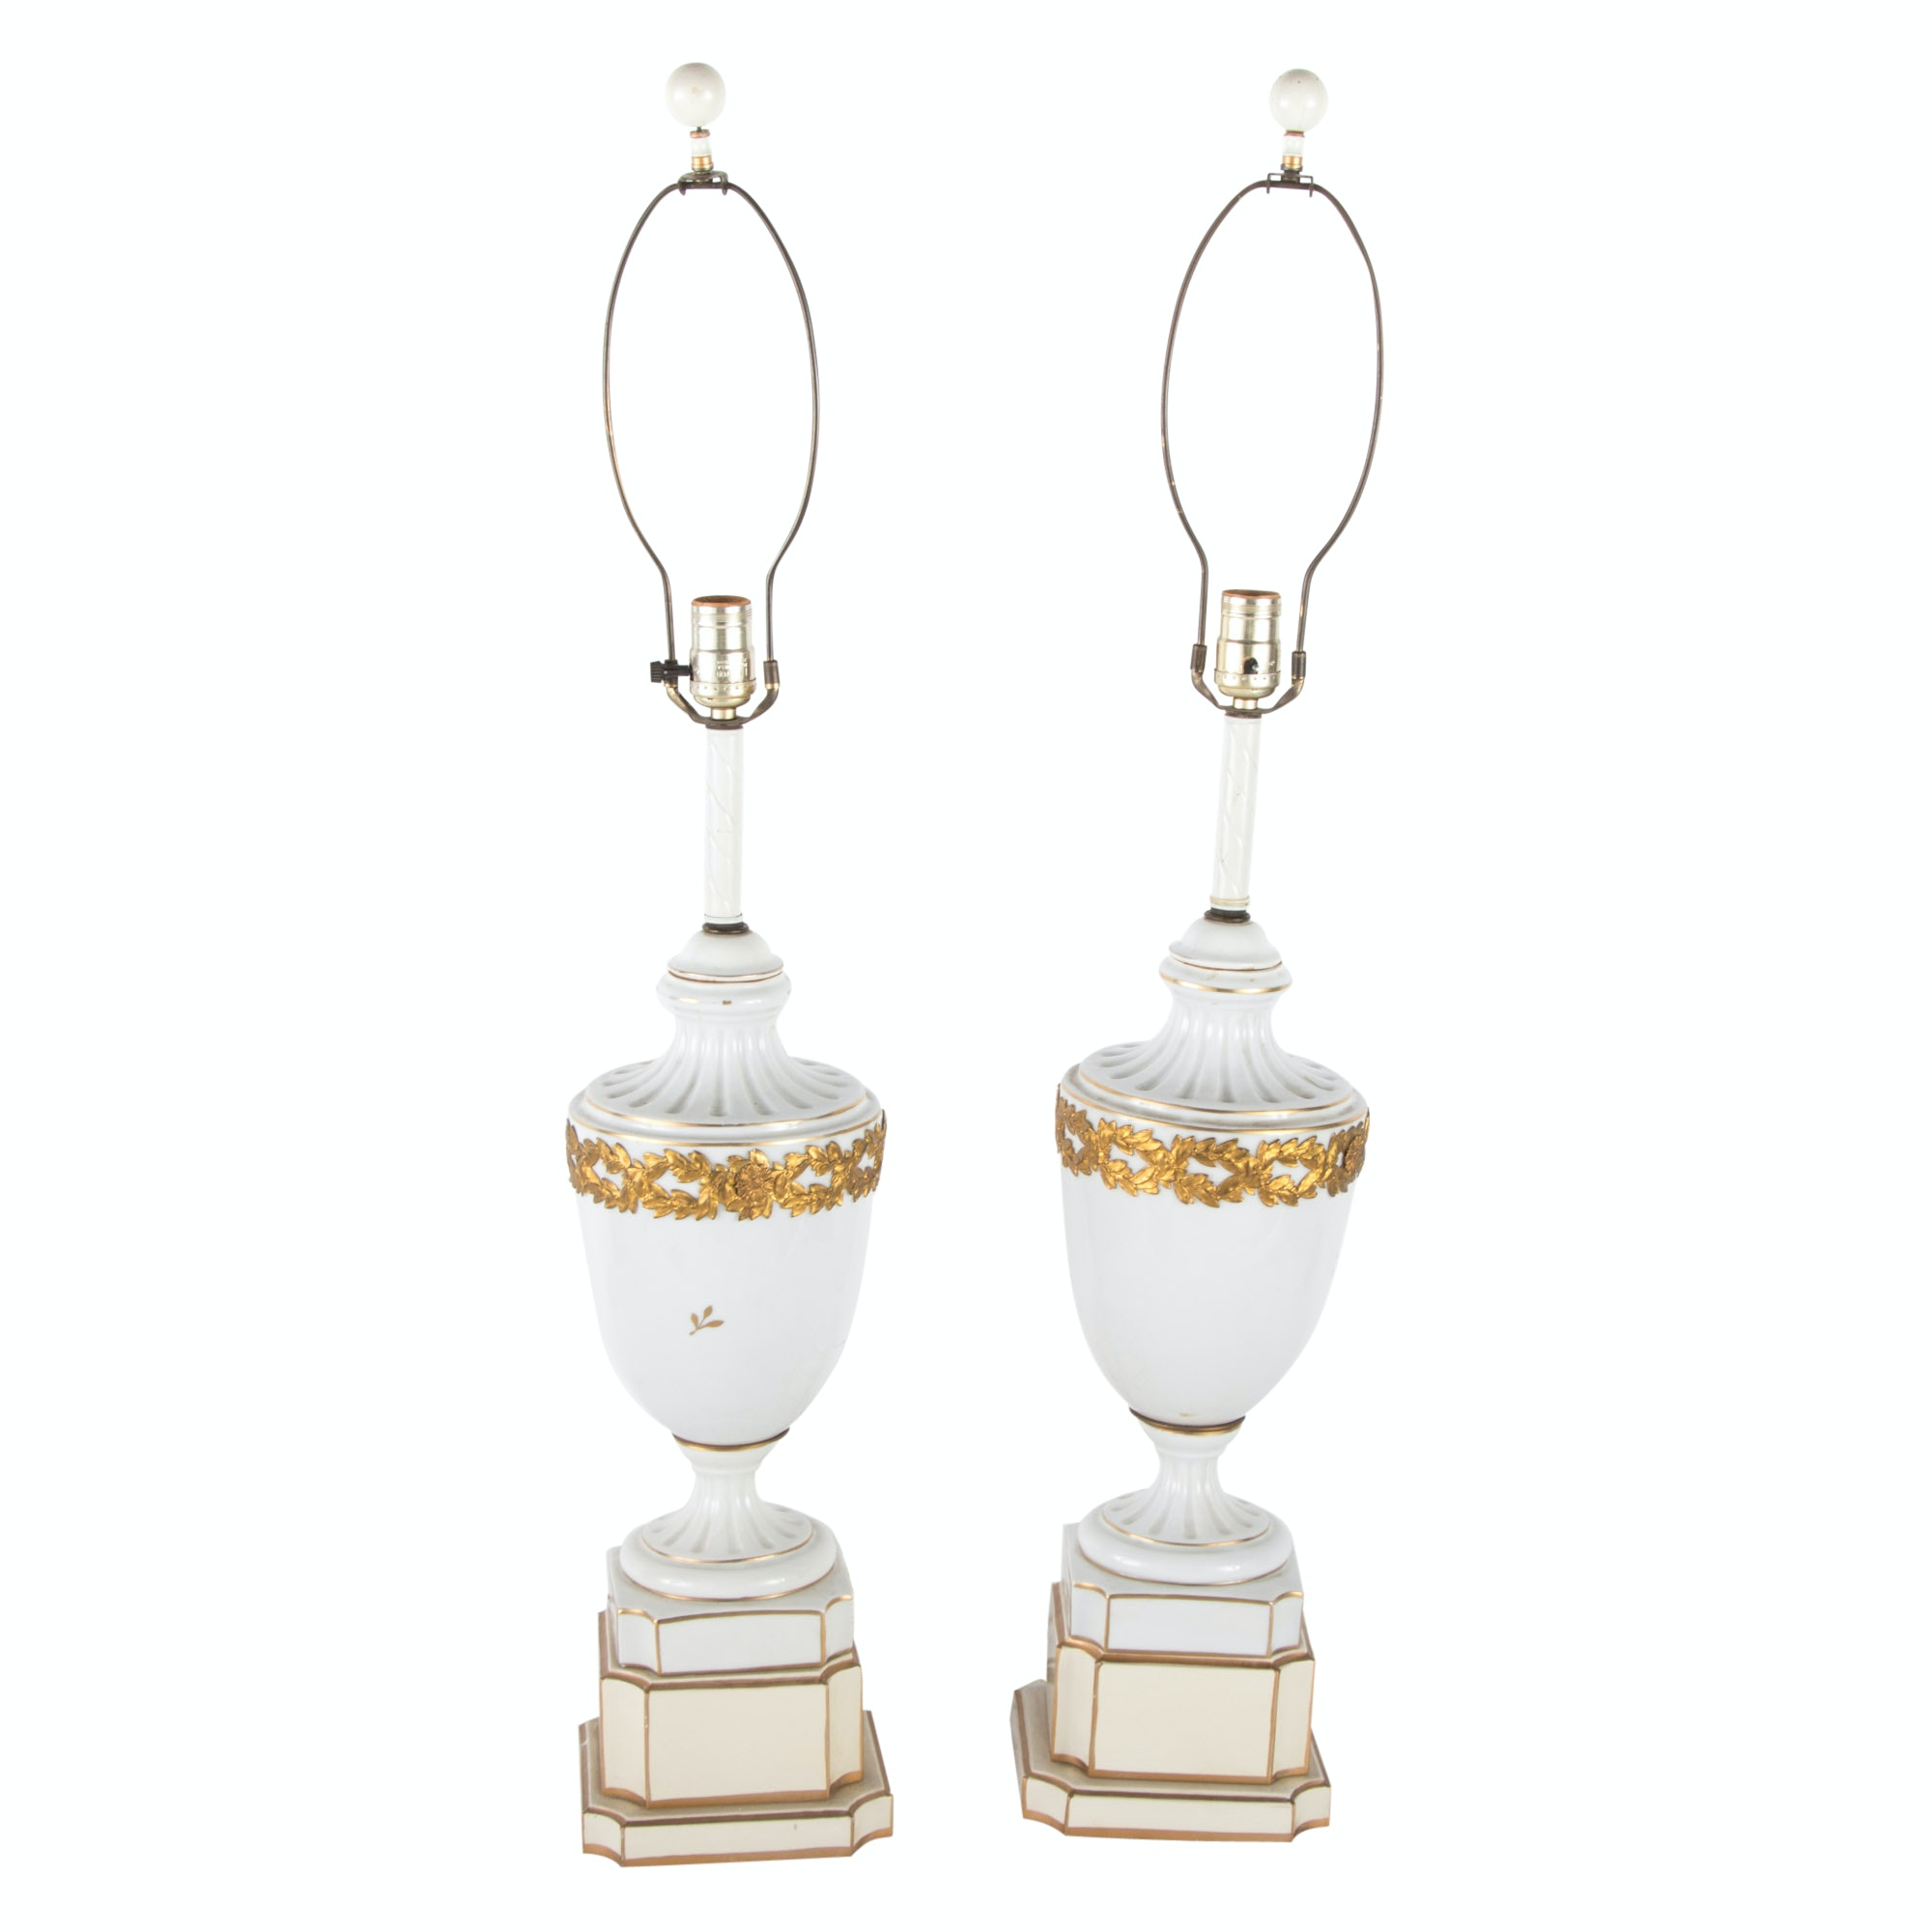 Pair of Italian White Porcelain and Gilt Decorated Table Lamps, 20th Century